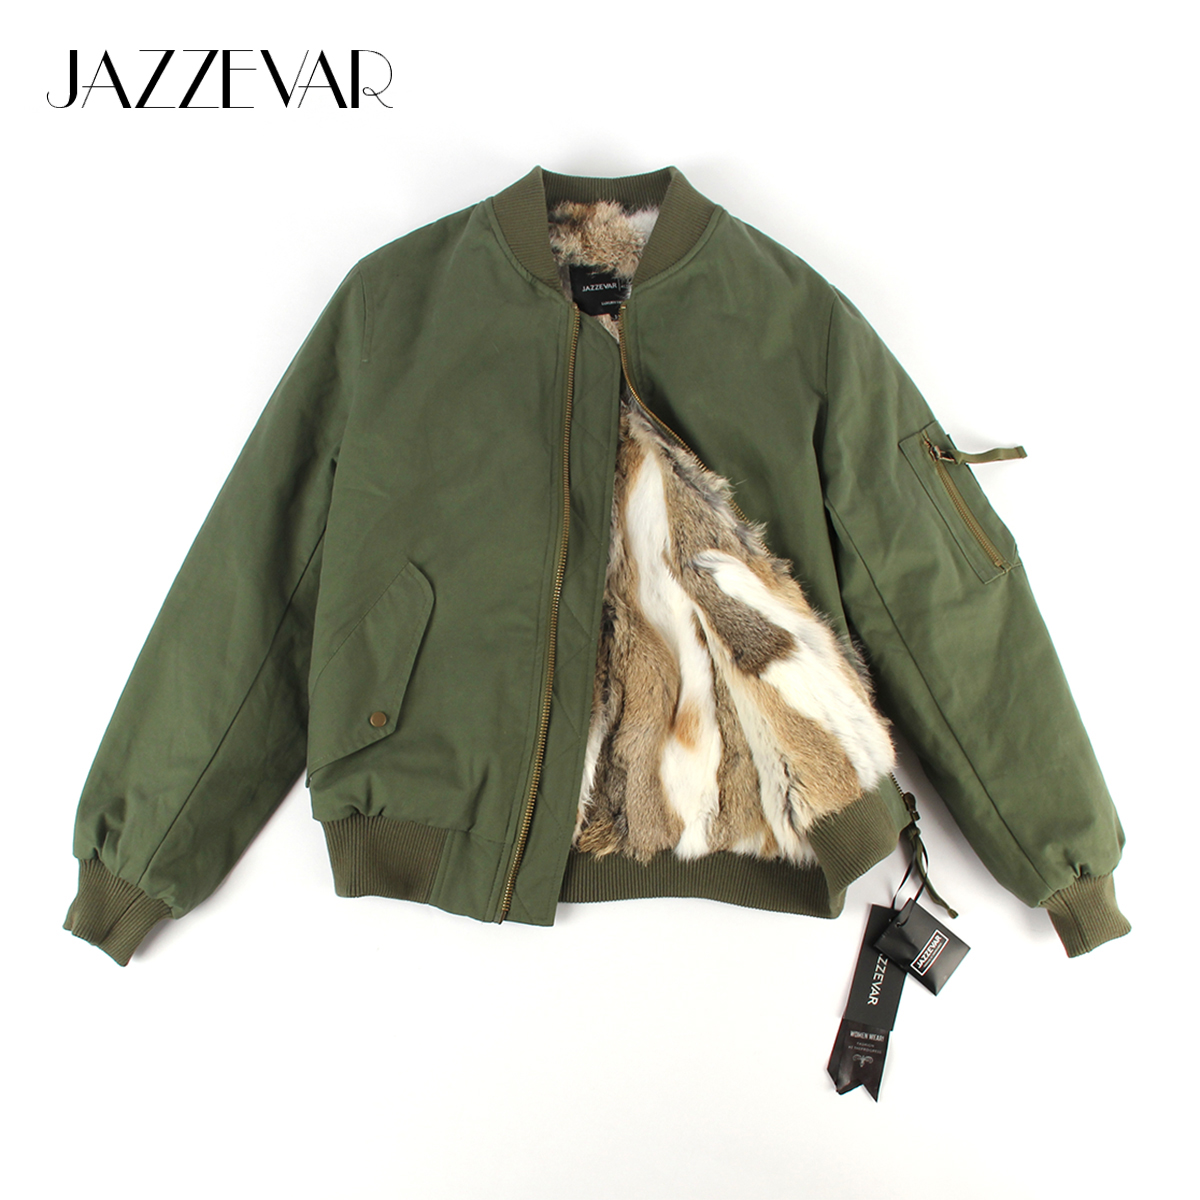 JAZZEVAR2019 New autumn winter fashion street bomber   jacket   Women zipper   basic     jacket   cusual cotton outerwear good quality 86220